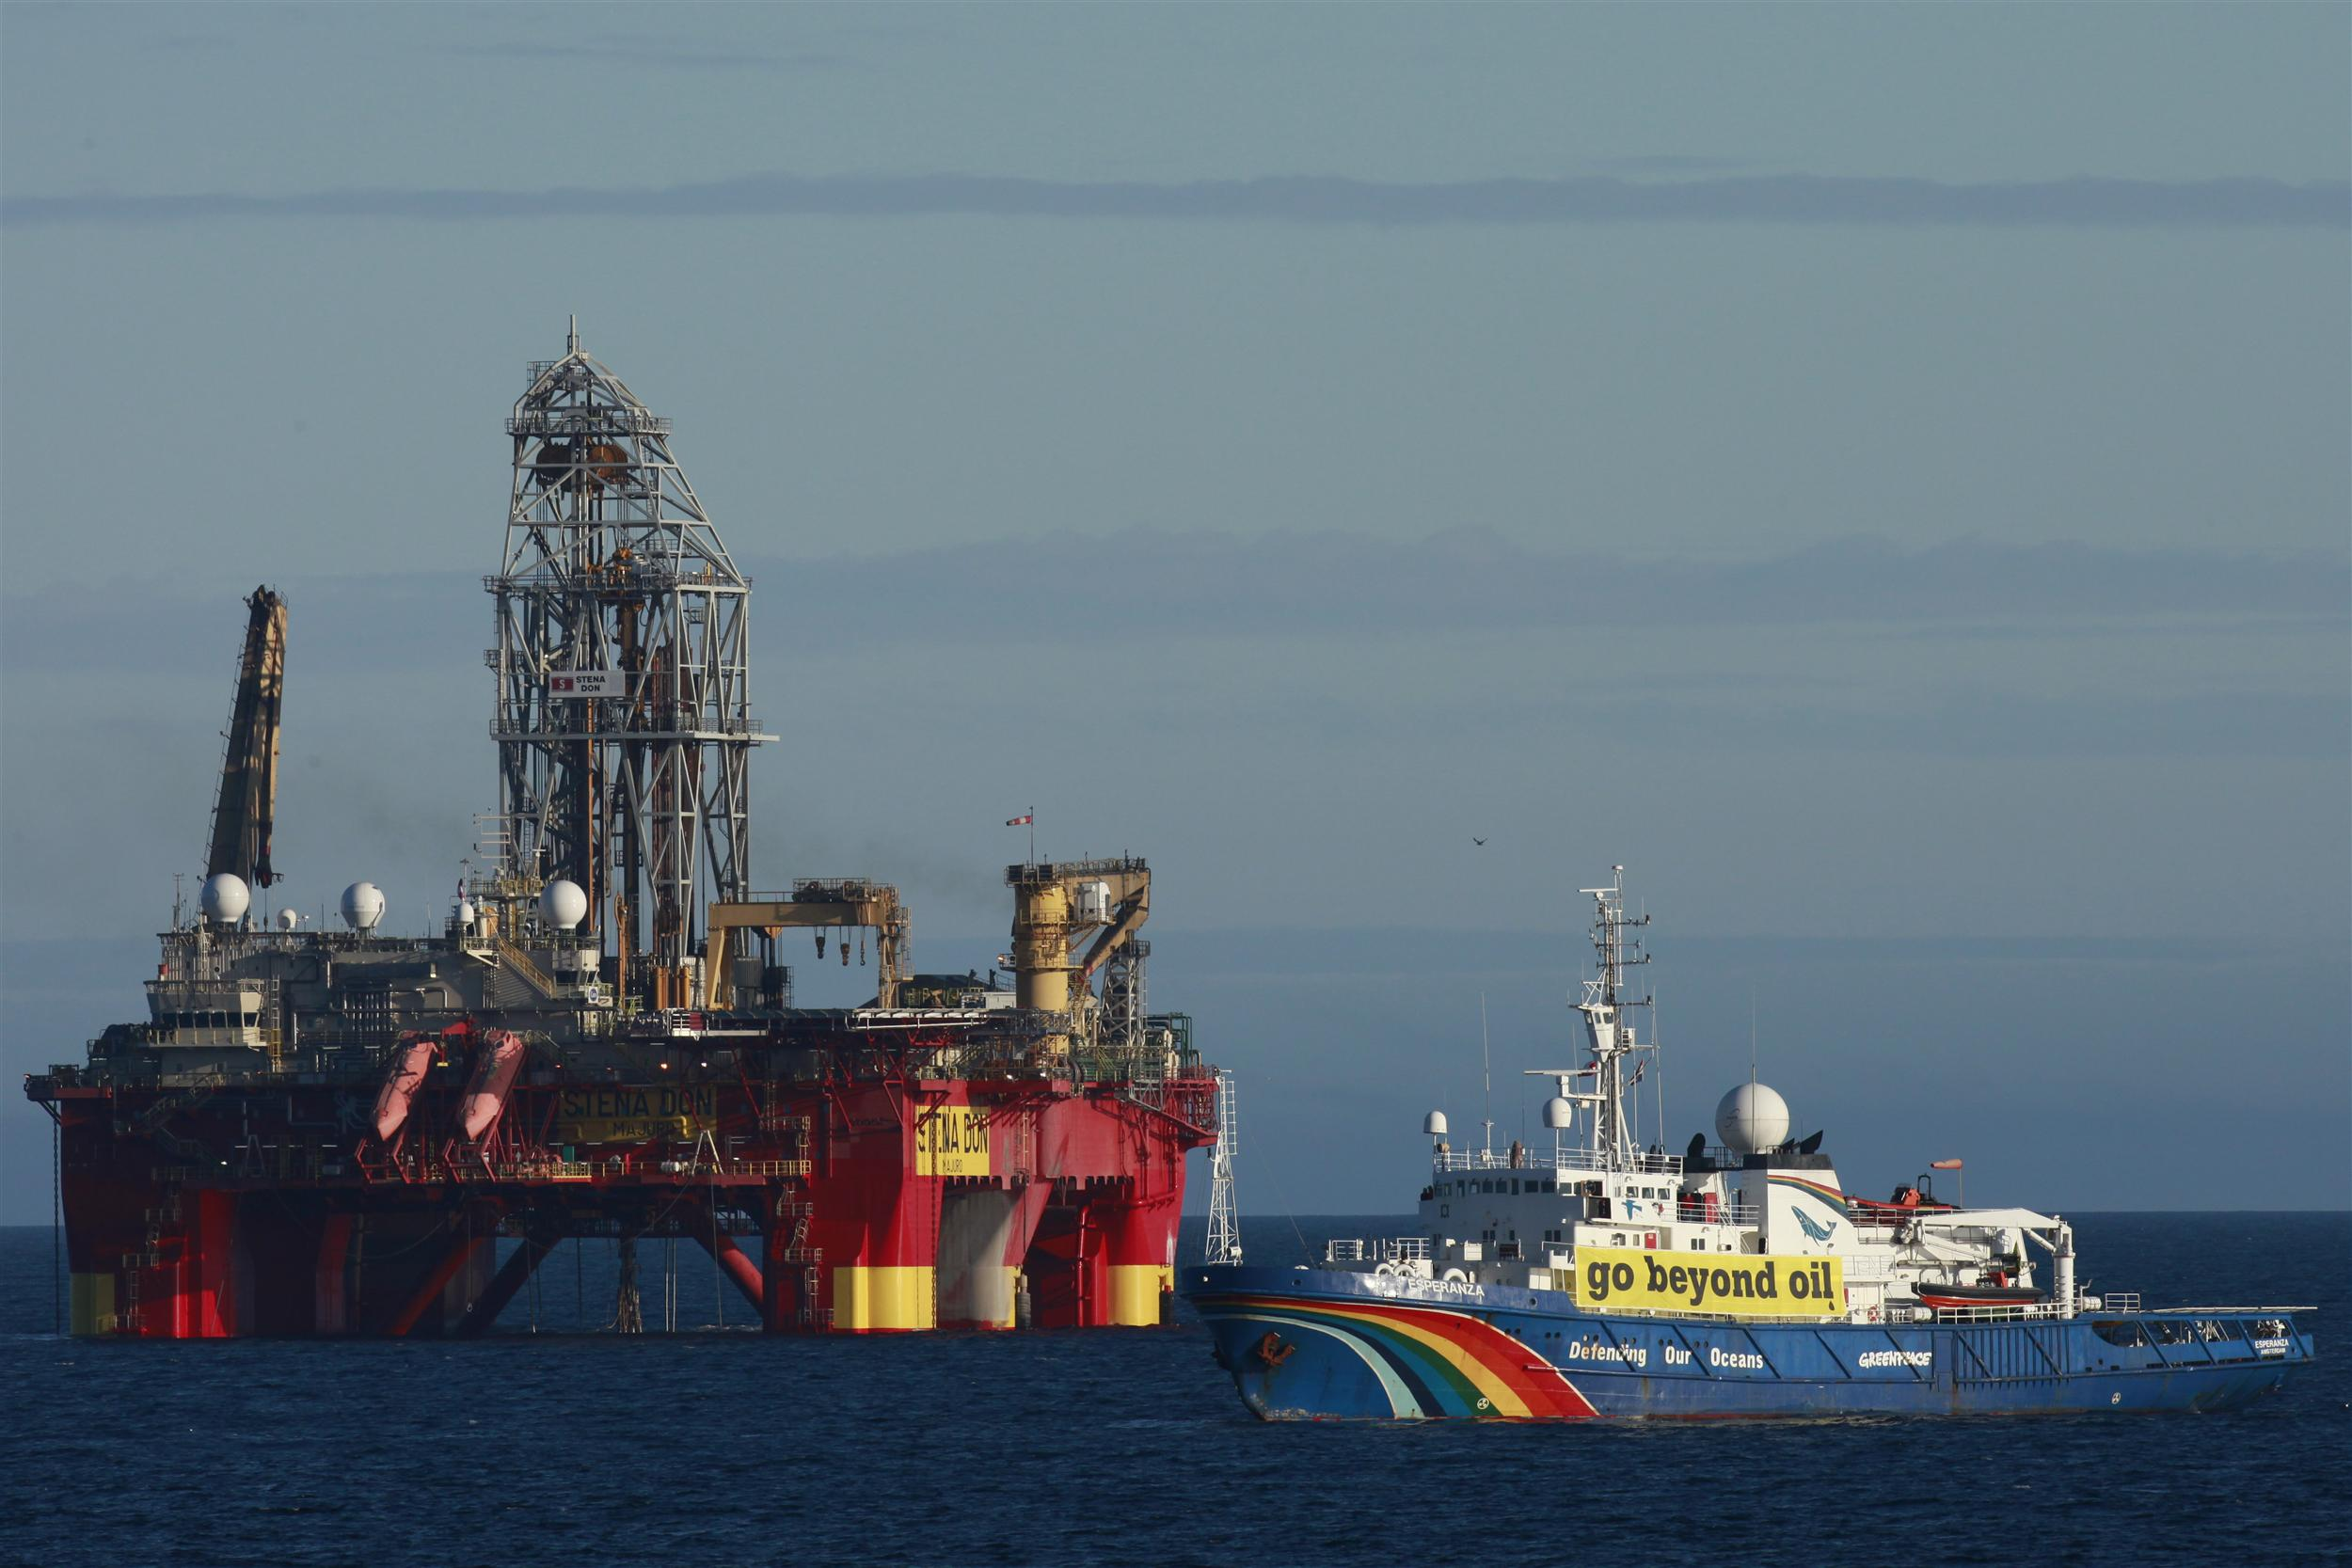 greenpeace ship in front of an oil platform